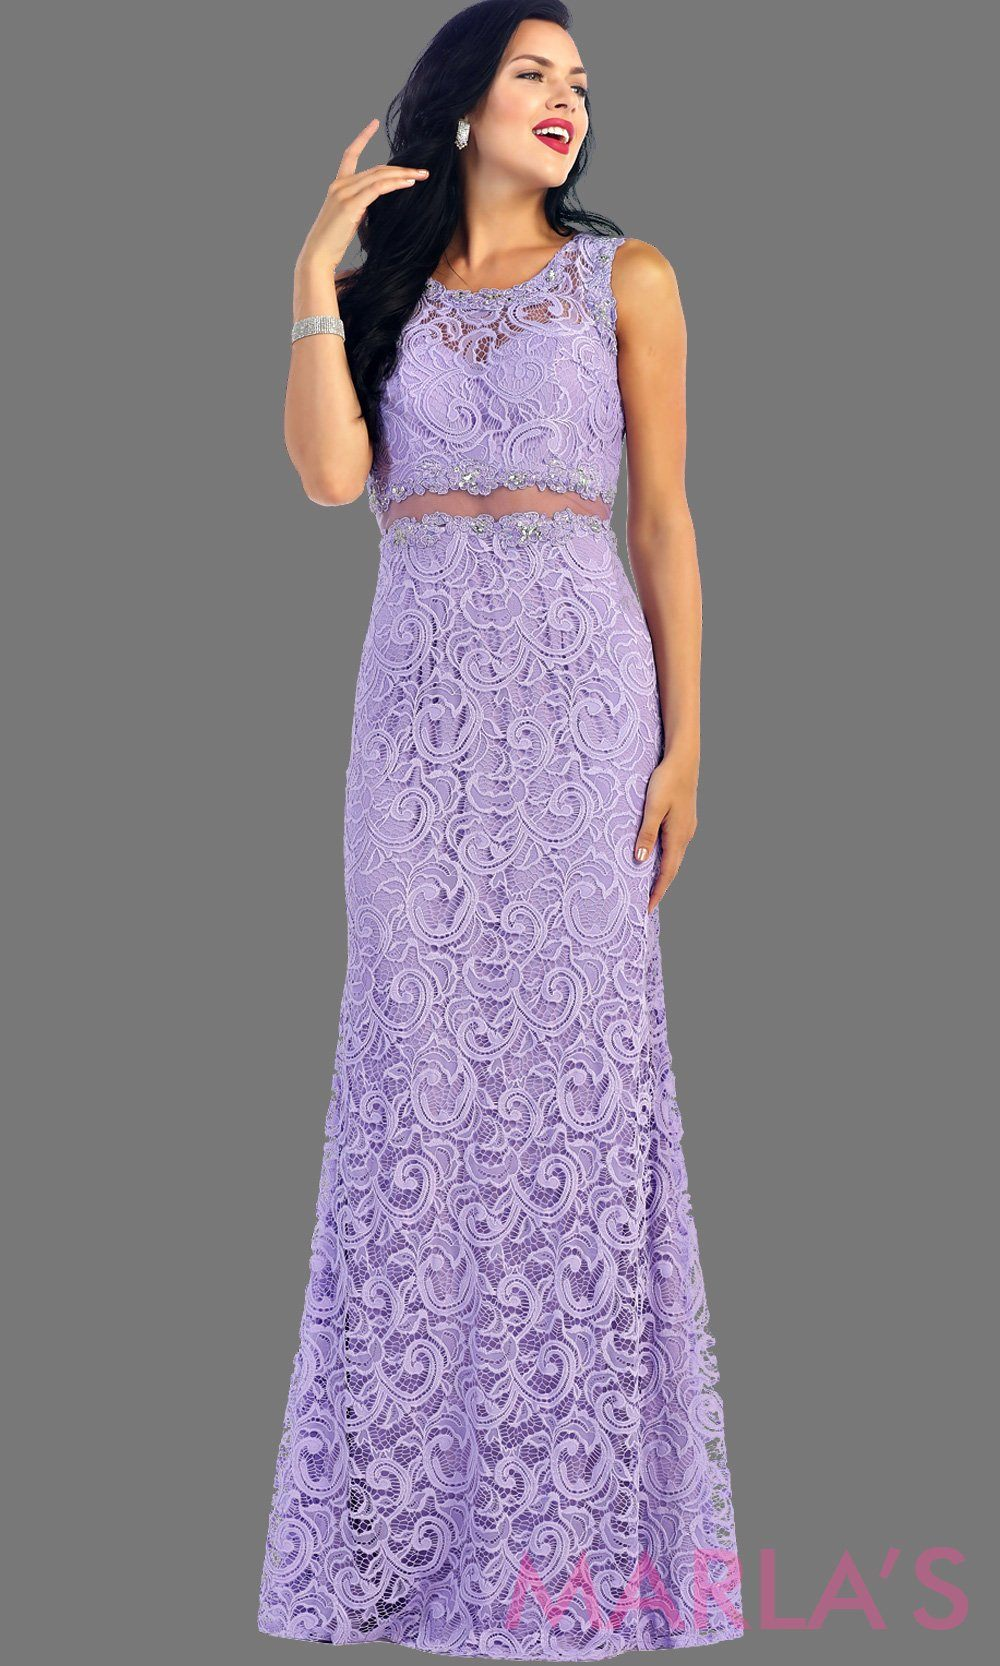 Long simple lace lilac two piece dress. This light purple dress is a perfect long prom dress. The lavendar illusion neckline and waist creates a two piece prom look. Can be worn as a wedding guest dress, worn at a formal event or gala. AVailable in plus sizes